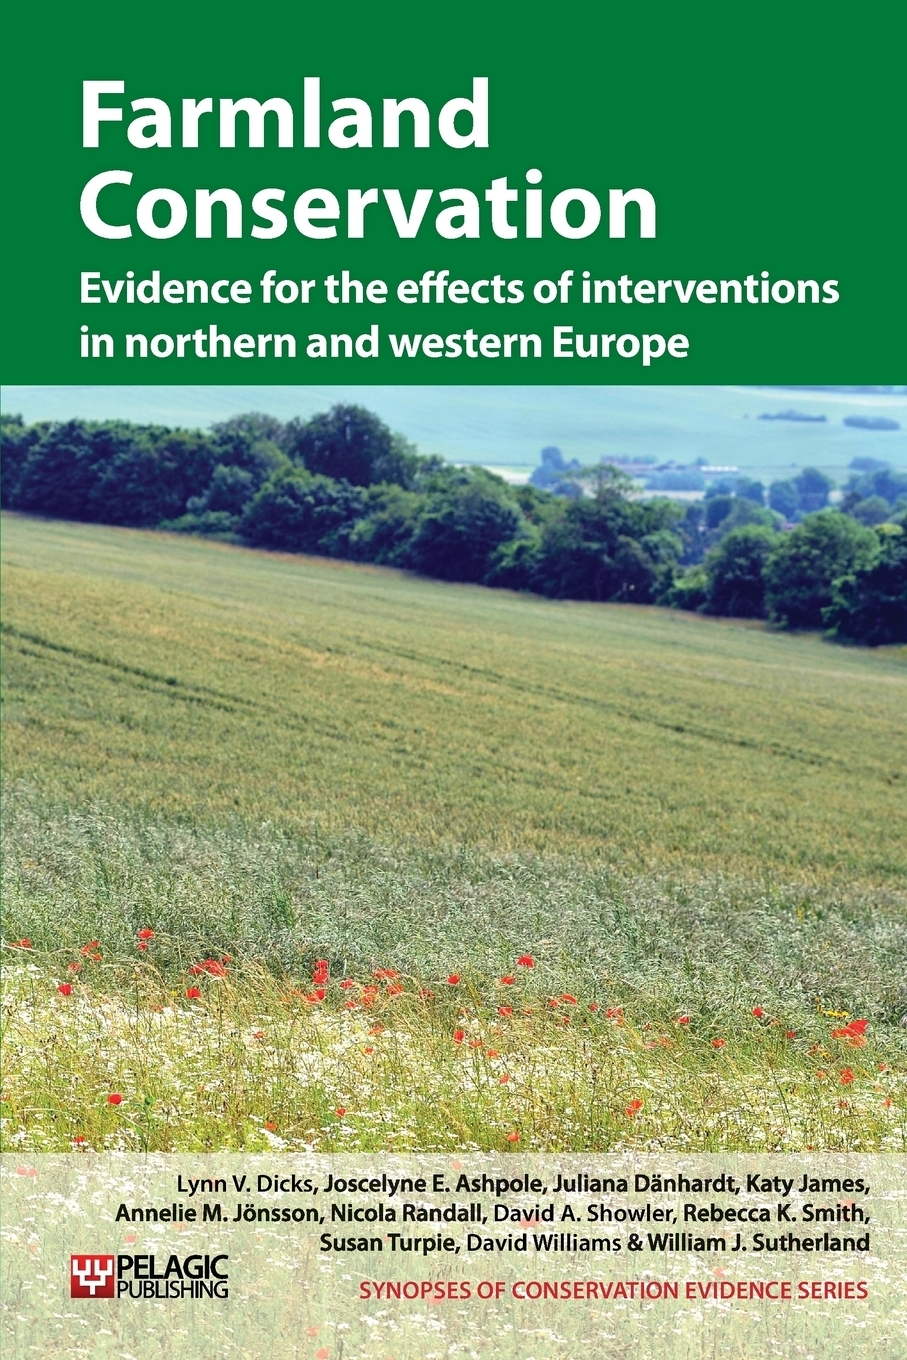 Lynn V. Dicks, Joscelyne E. Ashpole, Juliana Danhardt Farmland Conservation. Evidence for the Effects of Interventions in Northern and Western Europe conservation of swamp deer in terai grassland of northern india